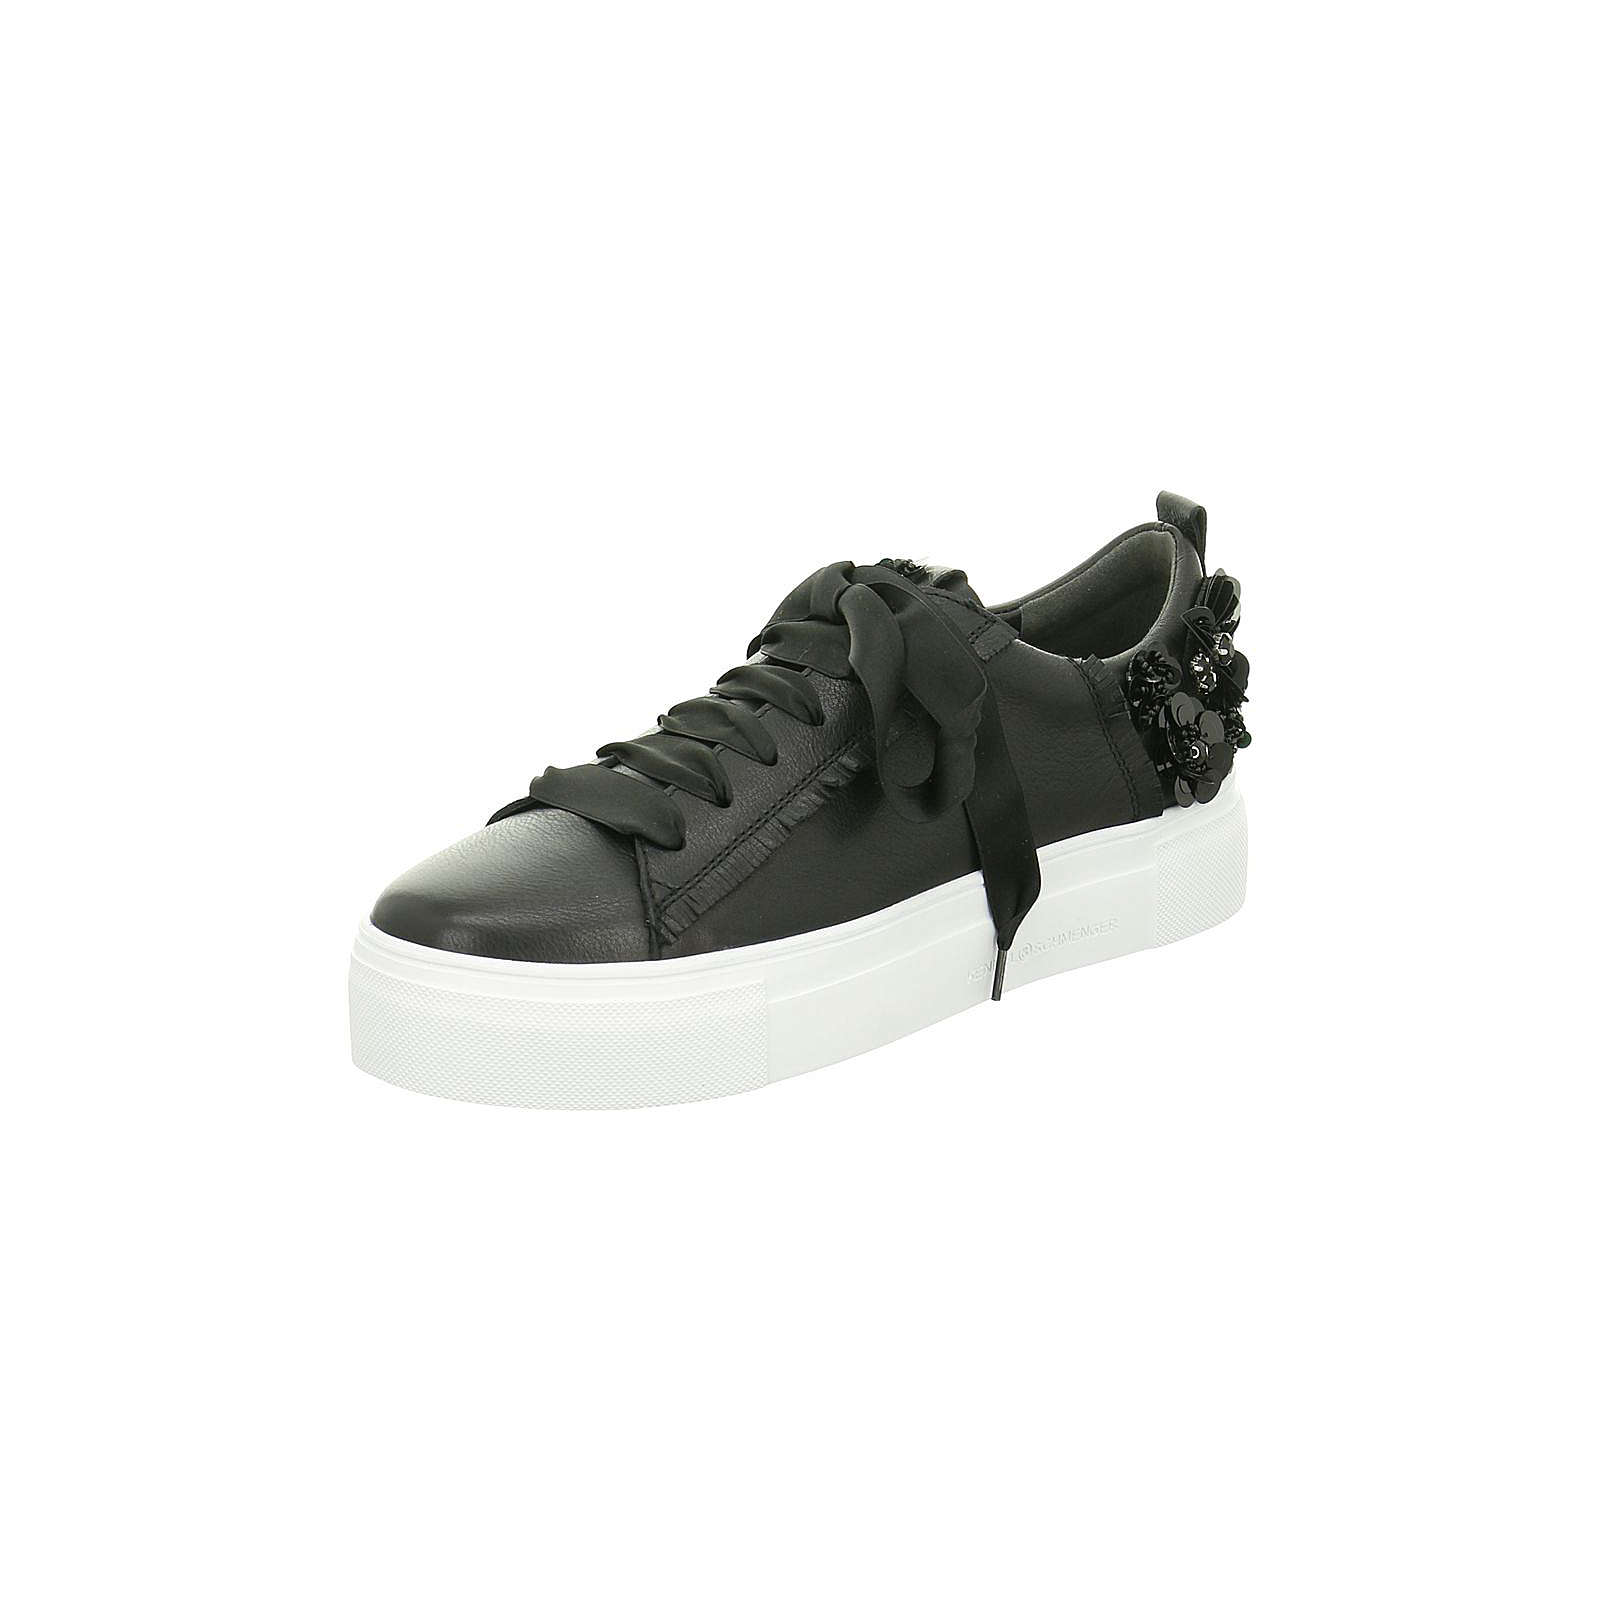 Kennel & Schmenger Sneakers Low schwarz Damen Gr. 40,5